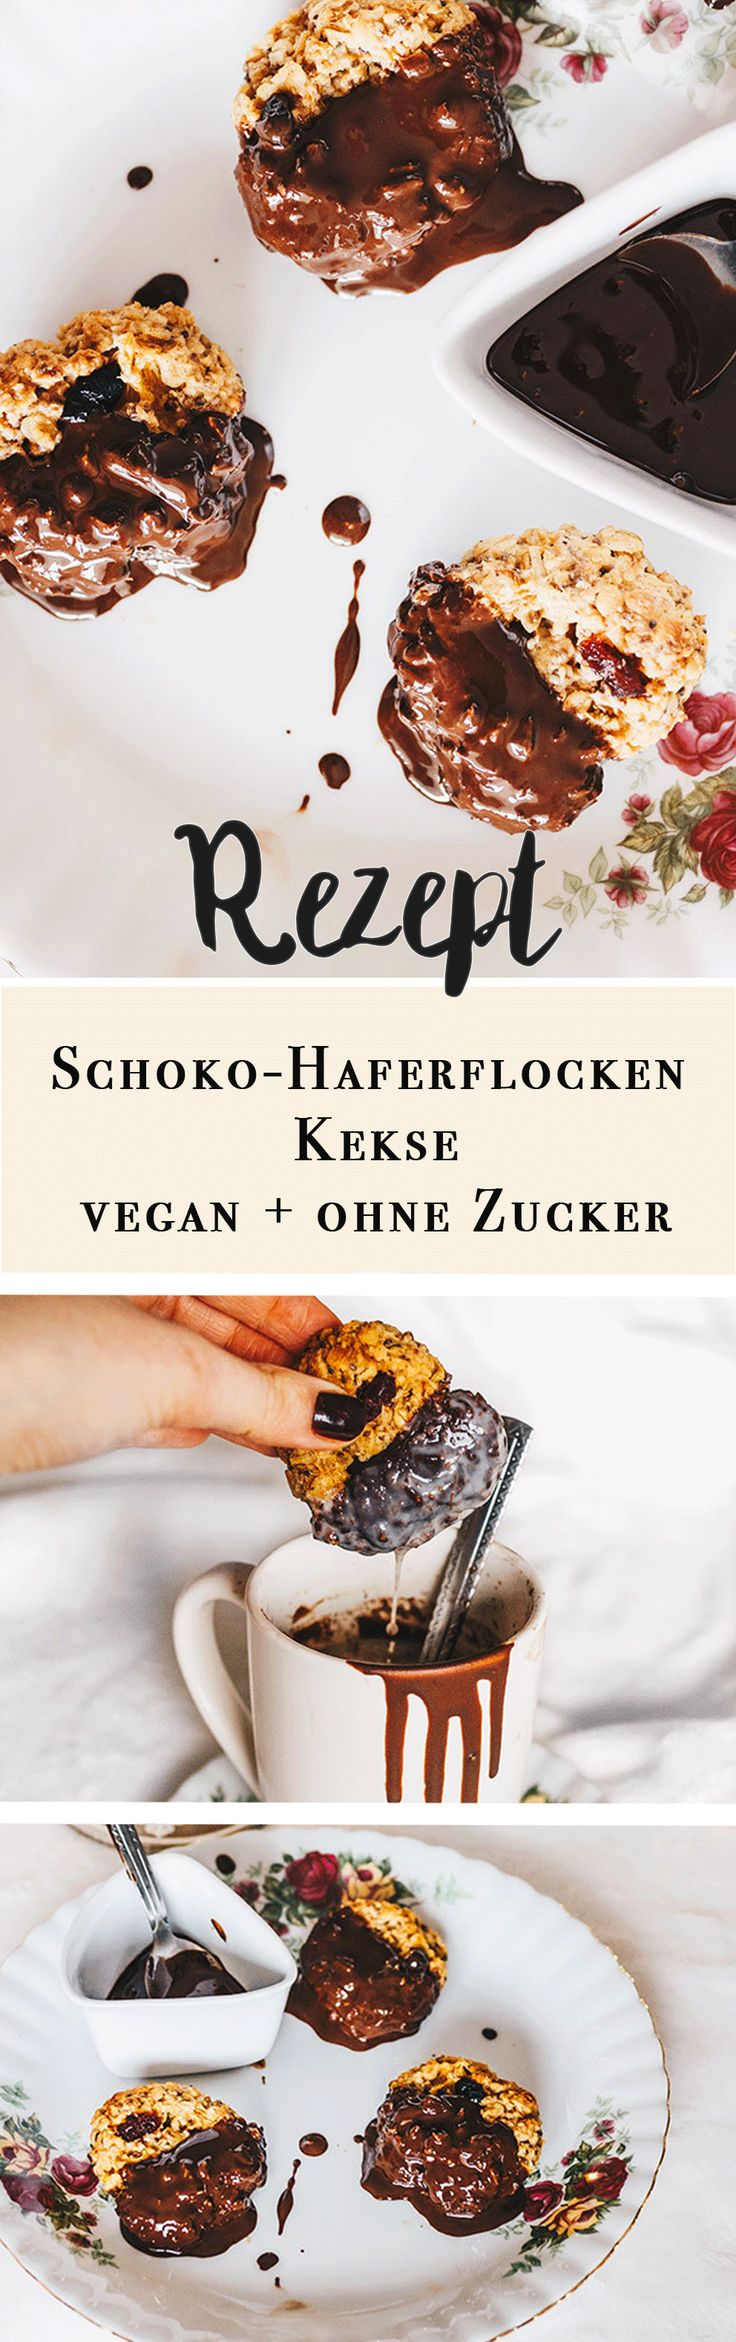 Vanillaholica | Vegane Schoko-Haferflockenkekse // vegan and ohne industriellen Zucker | http://www.vanillaholica.com. . Veganismus, vegan recipes, vegan lifestyle, animal rights, vegans, vegan food,  (Clean Vegan Recipes)